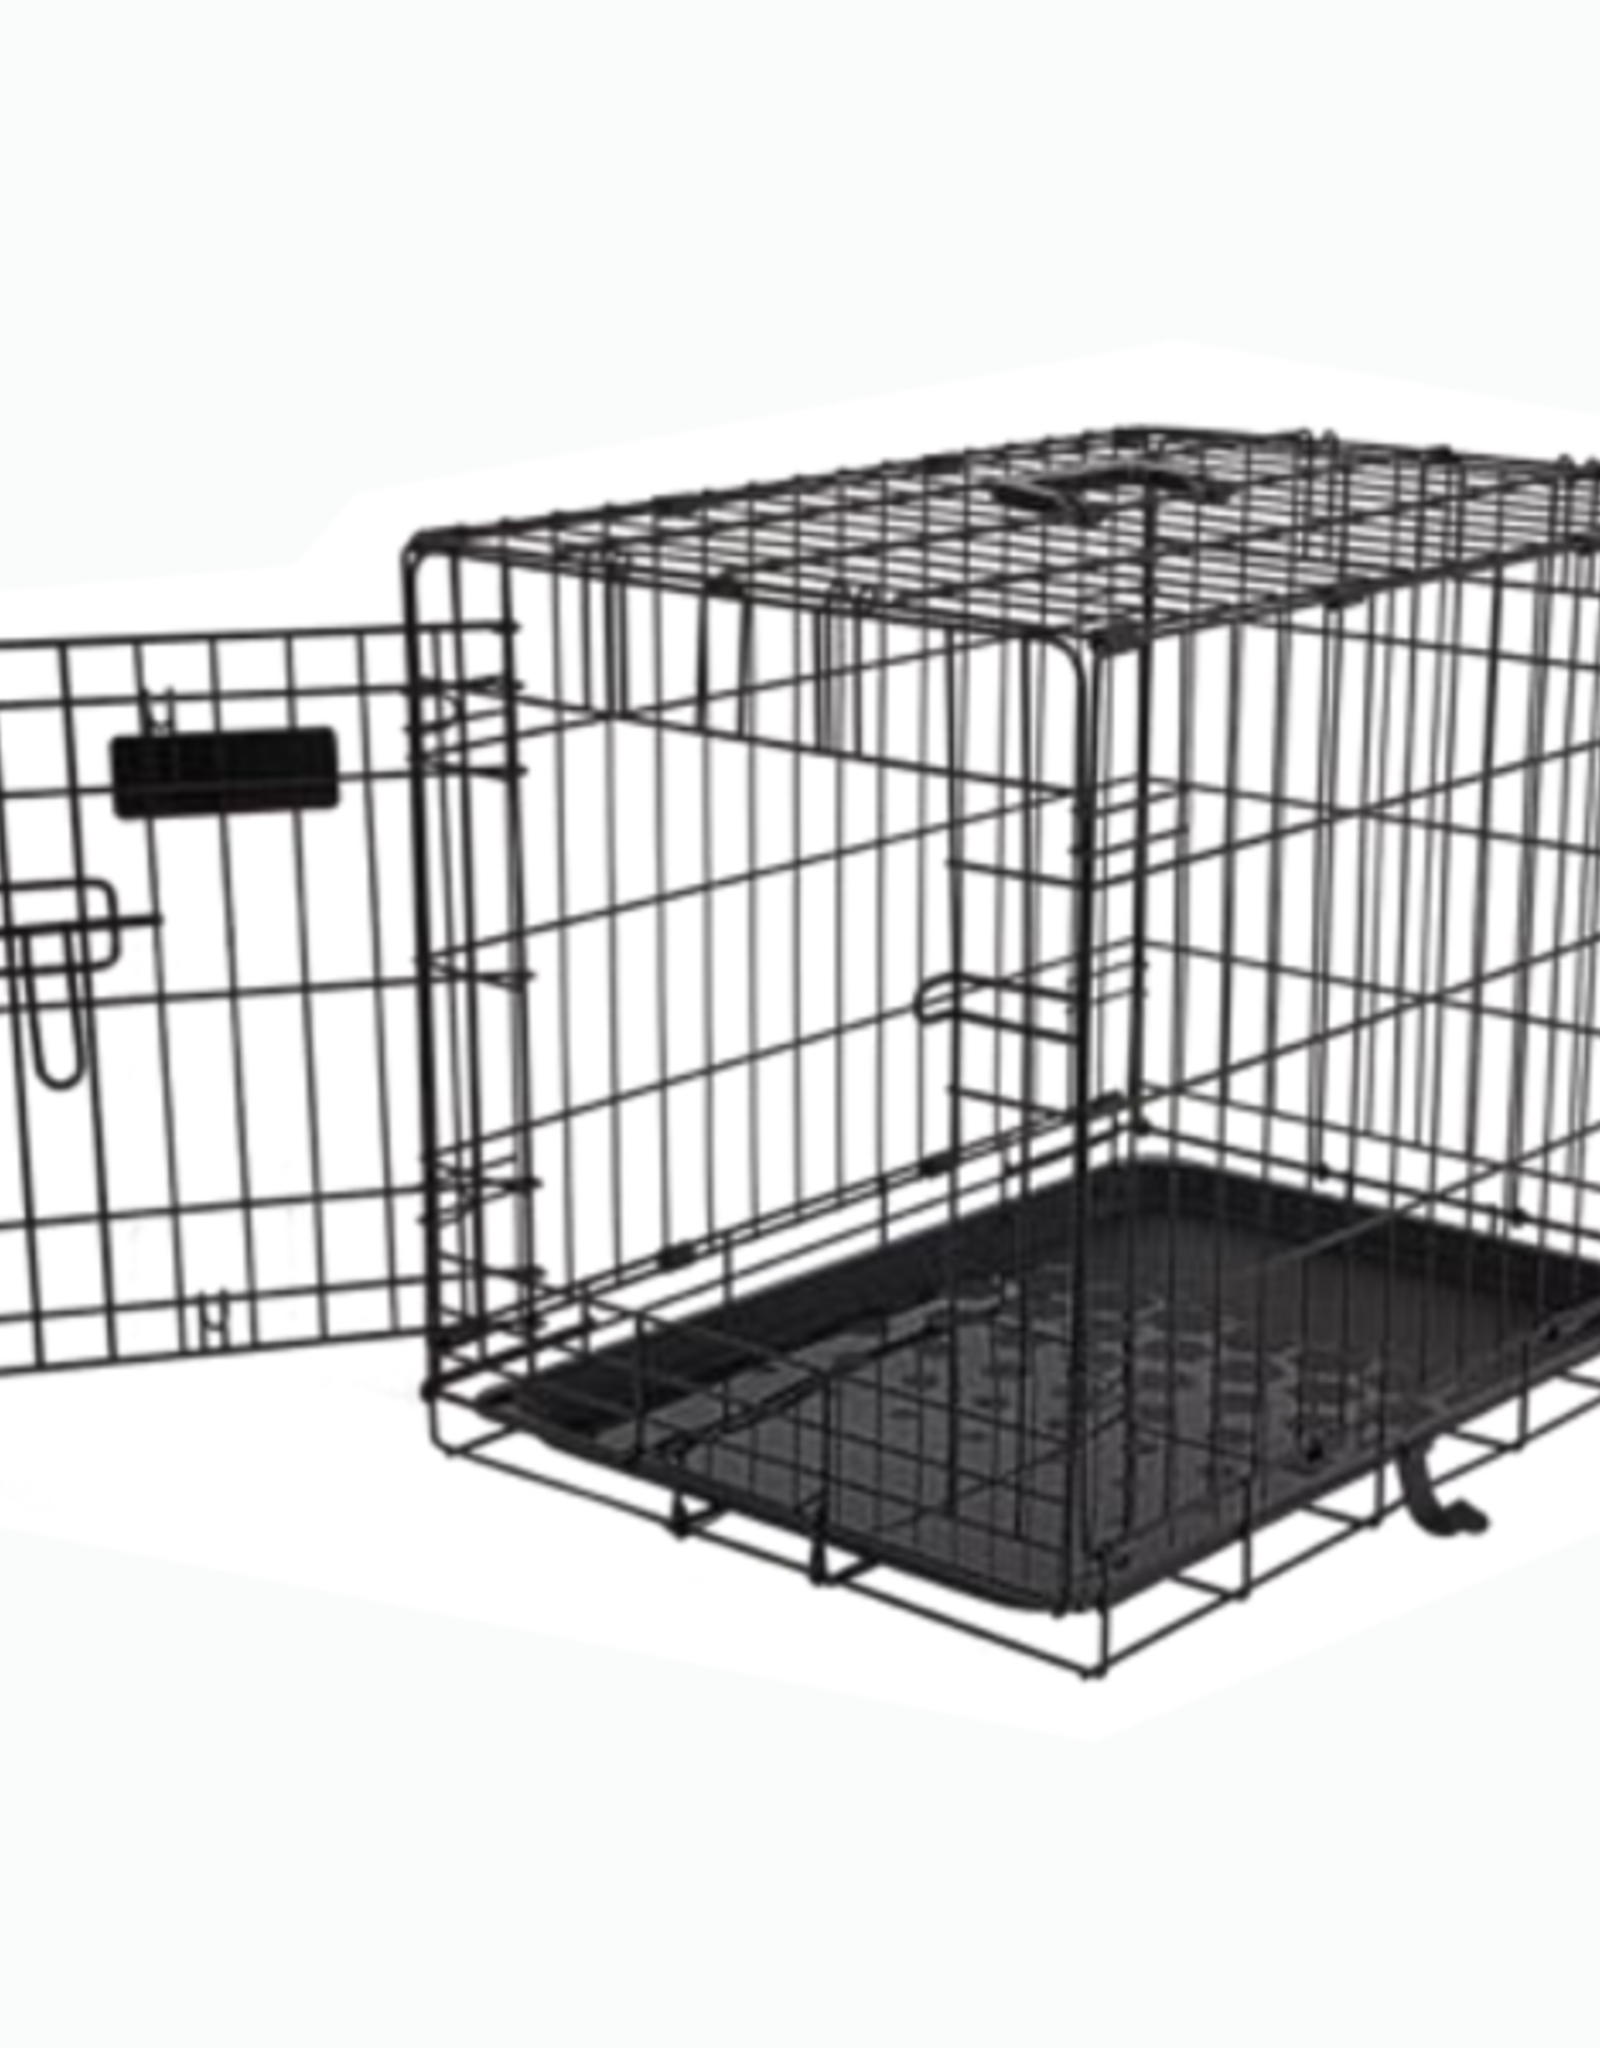 """Valu Paws Precision ValuPaws Housetraining Wire Crate 54""""x32.5""""x34.7"""""""